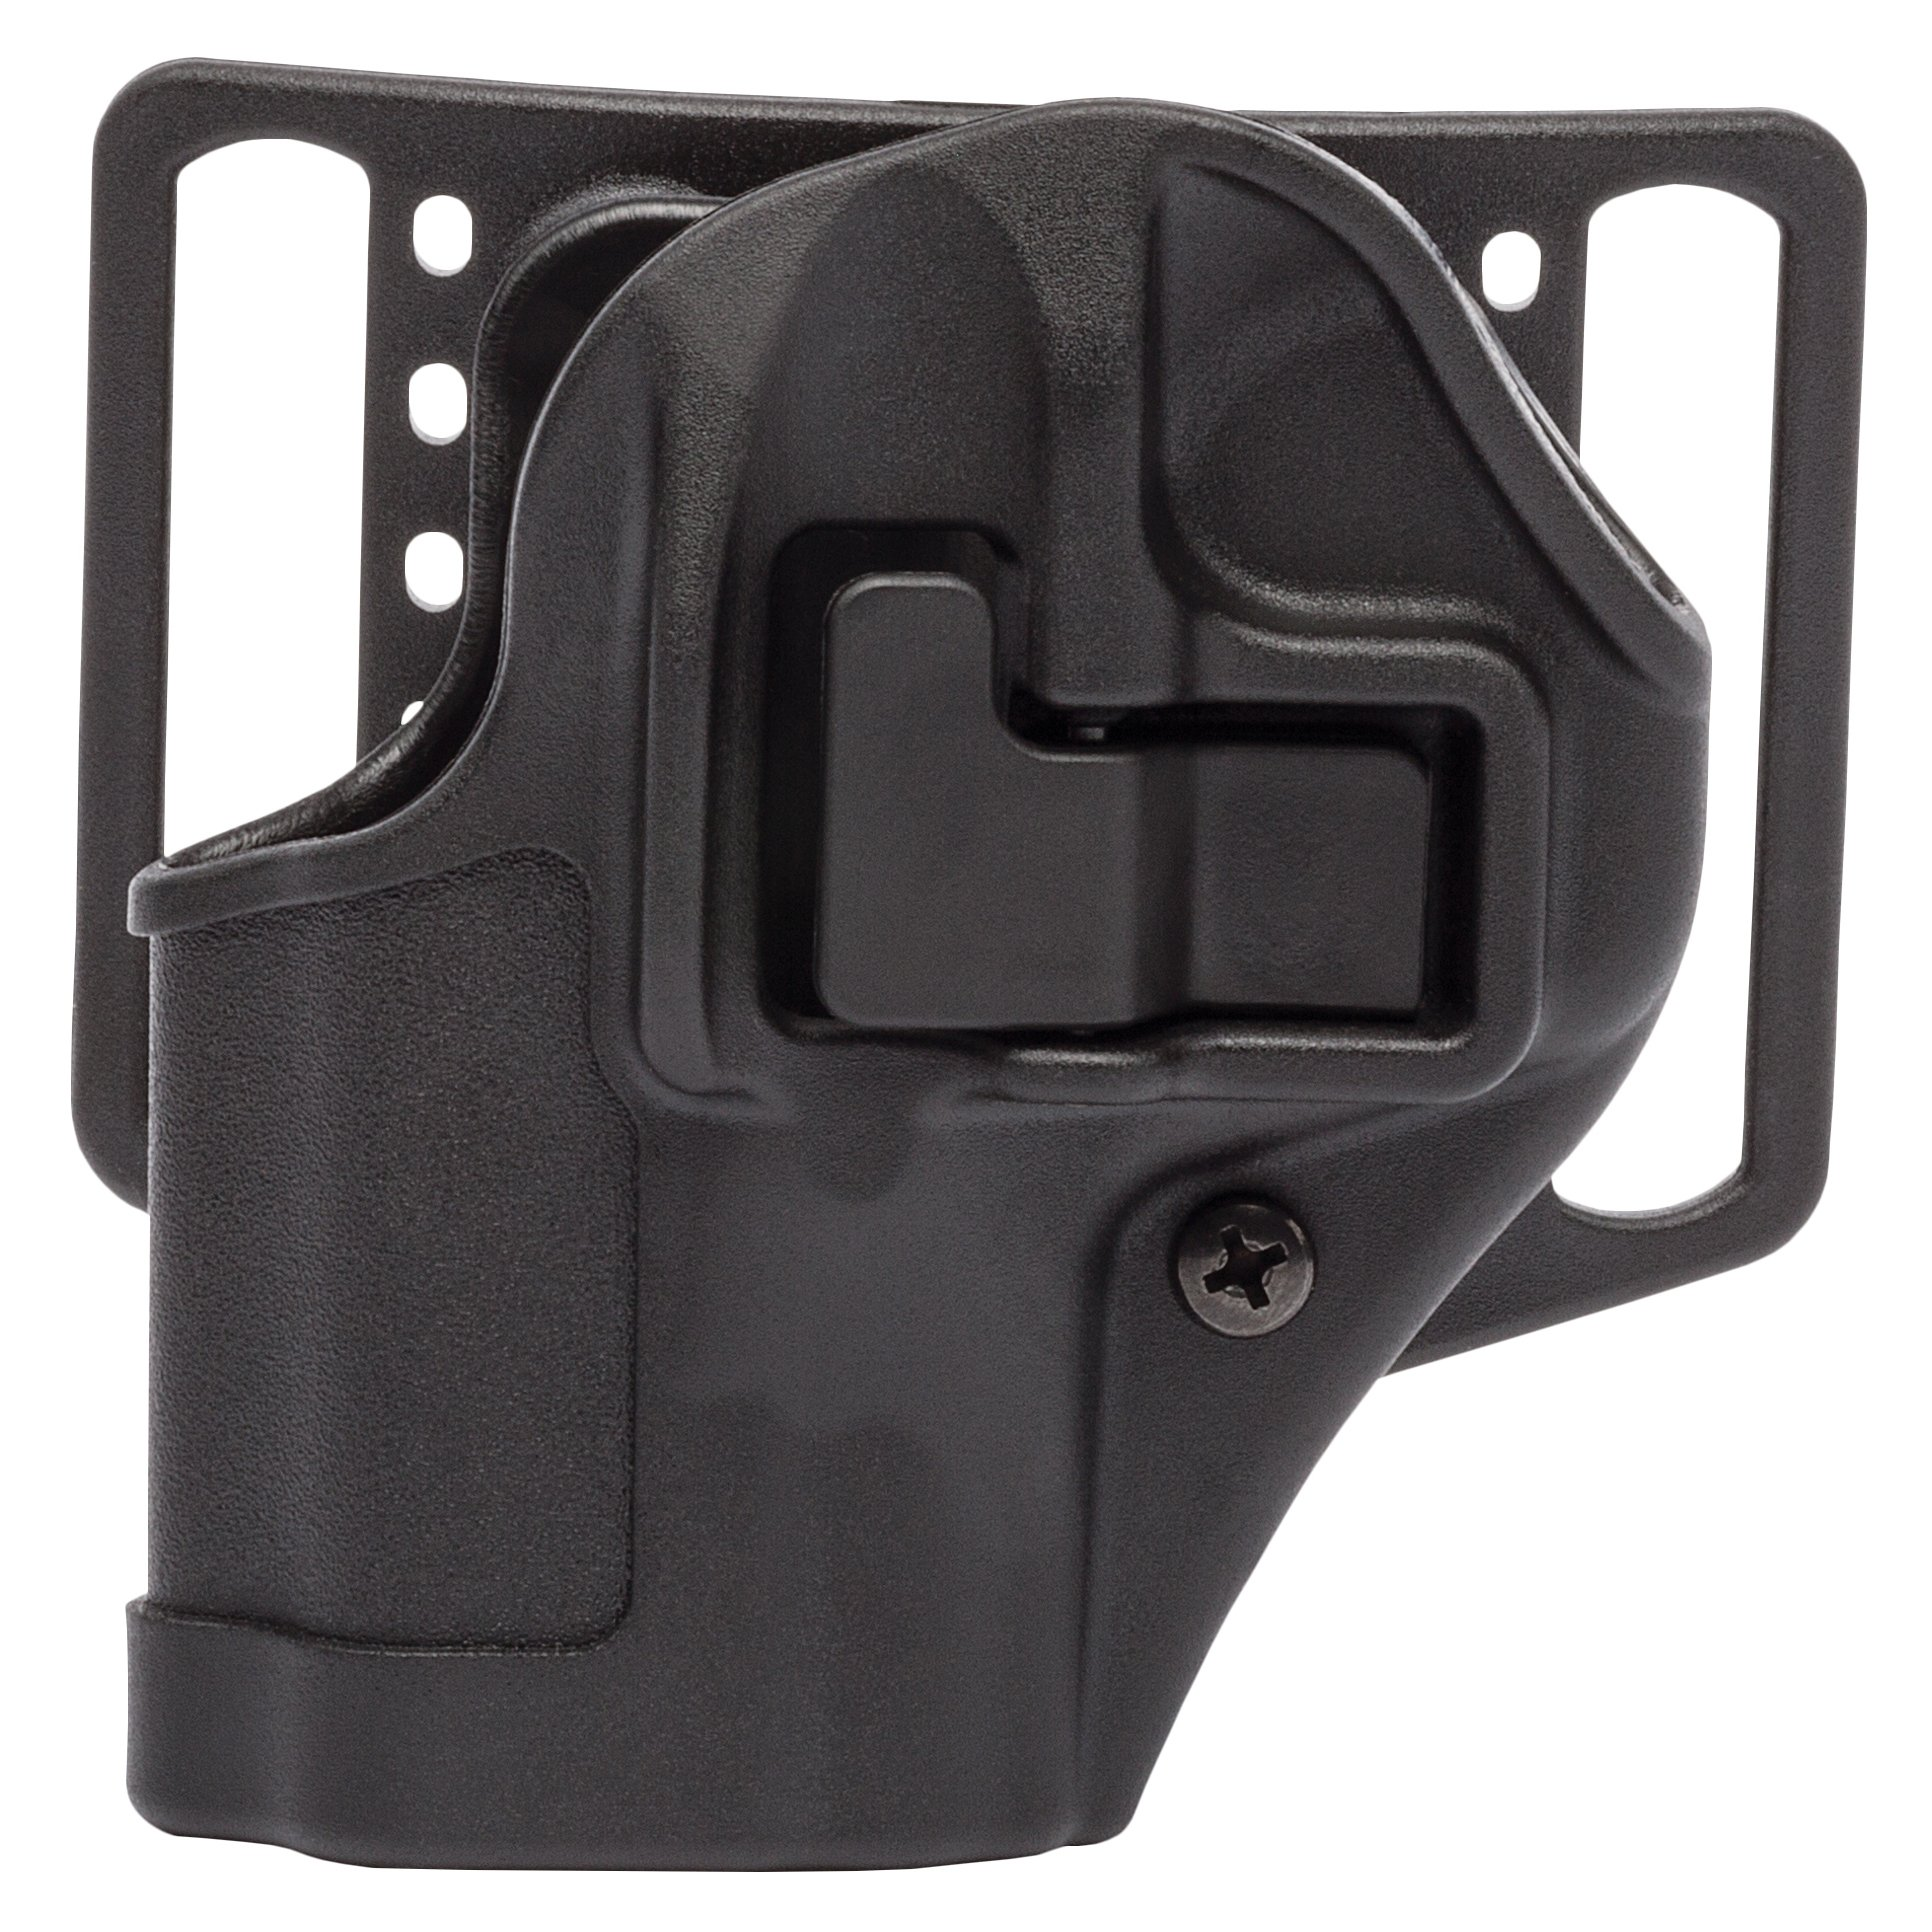 Blackhawk SERPA CQC Holster with Belt Loop and Paddle